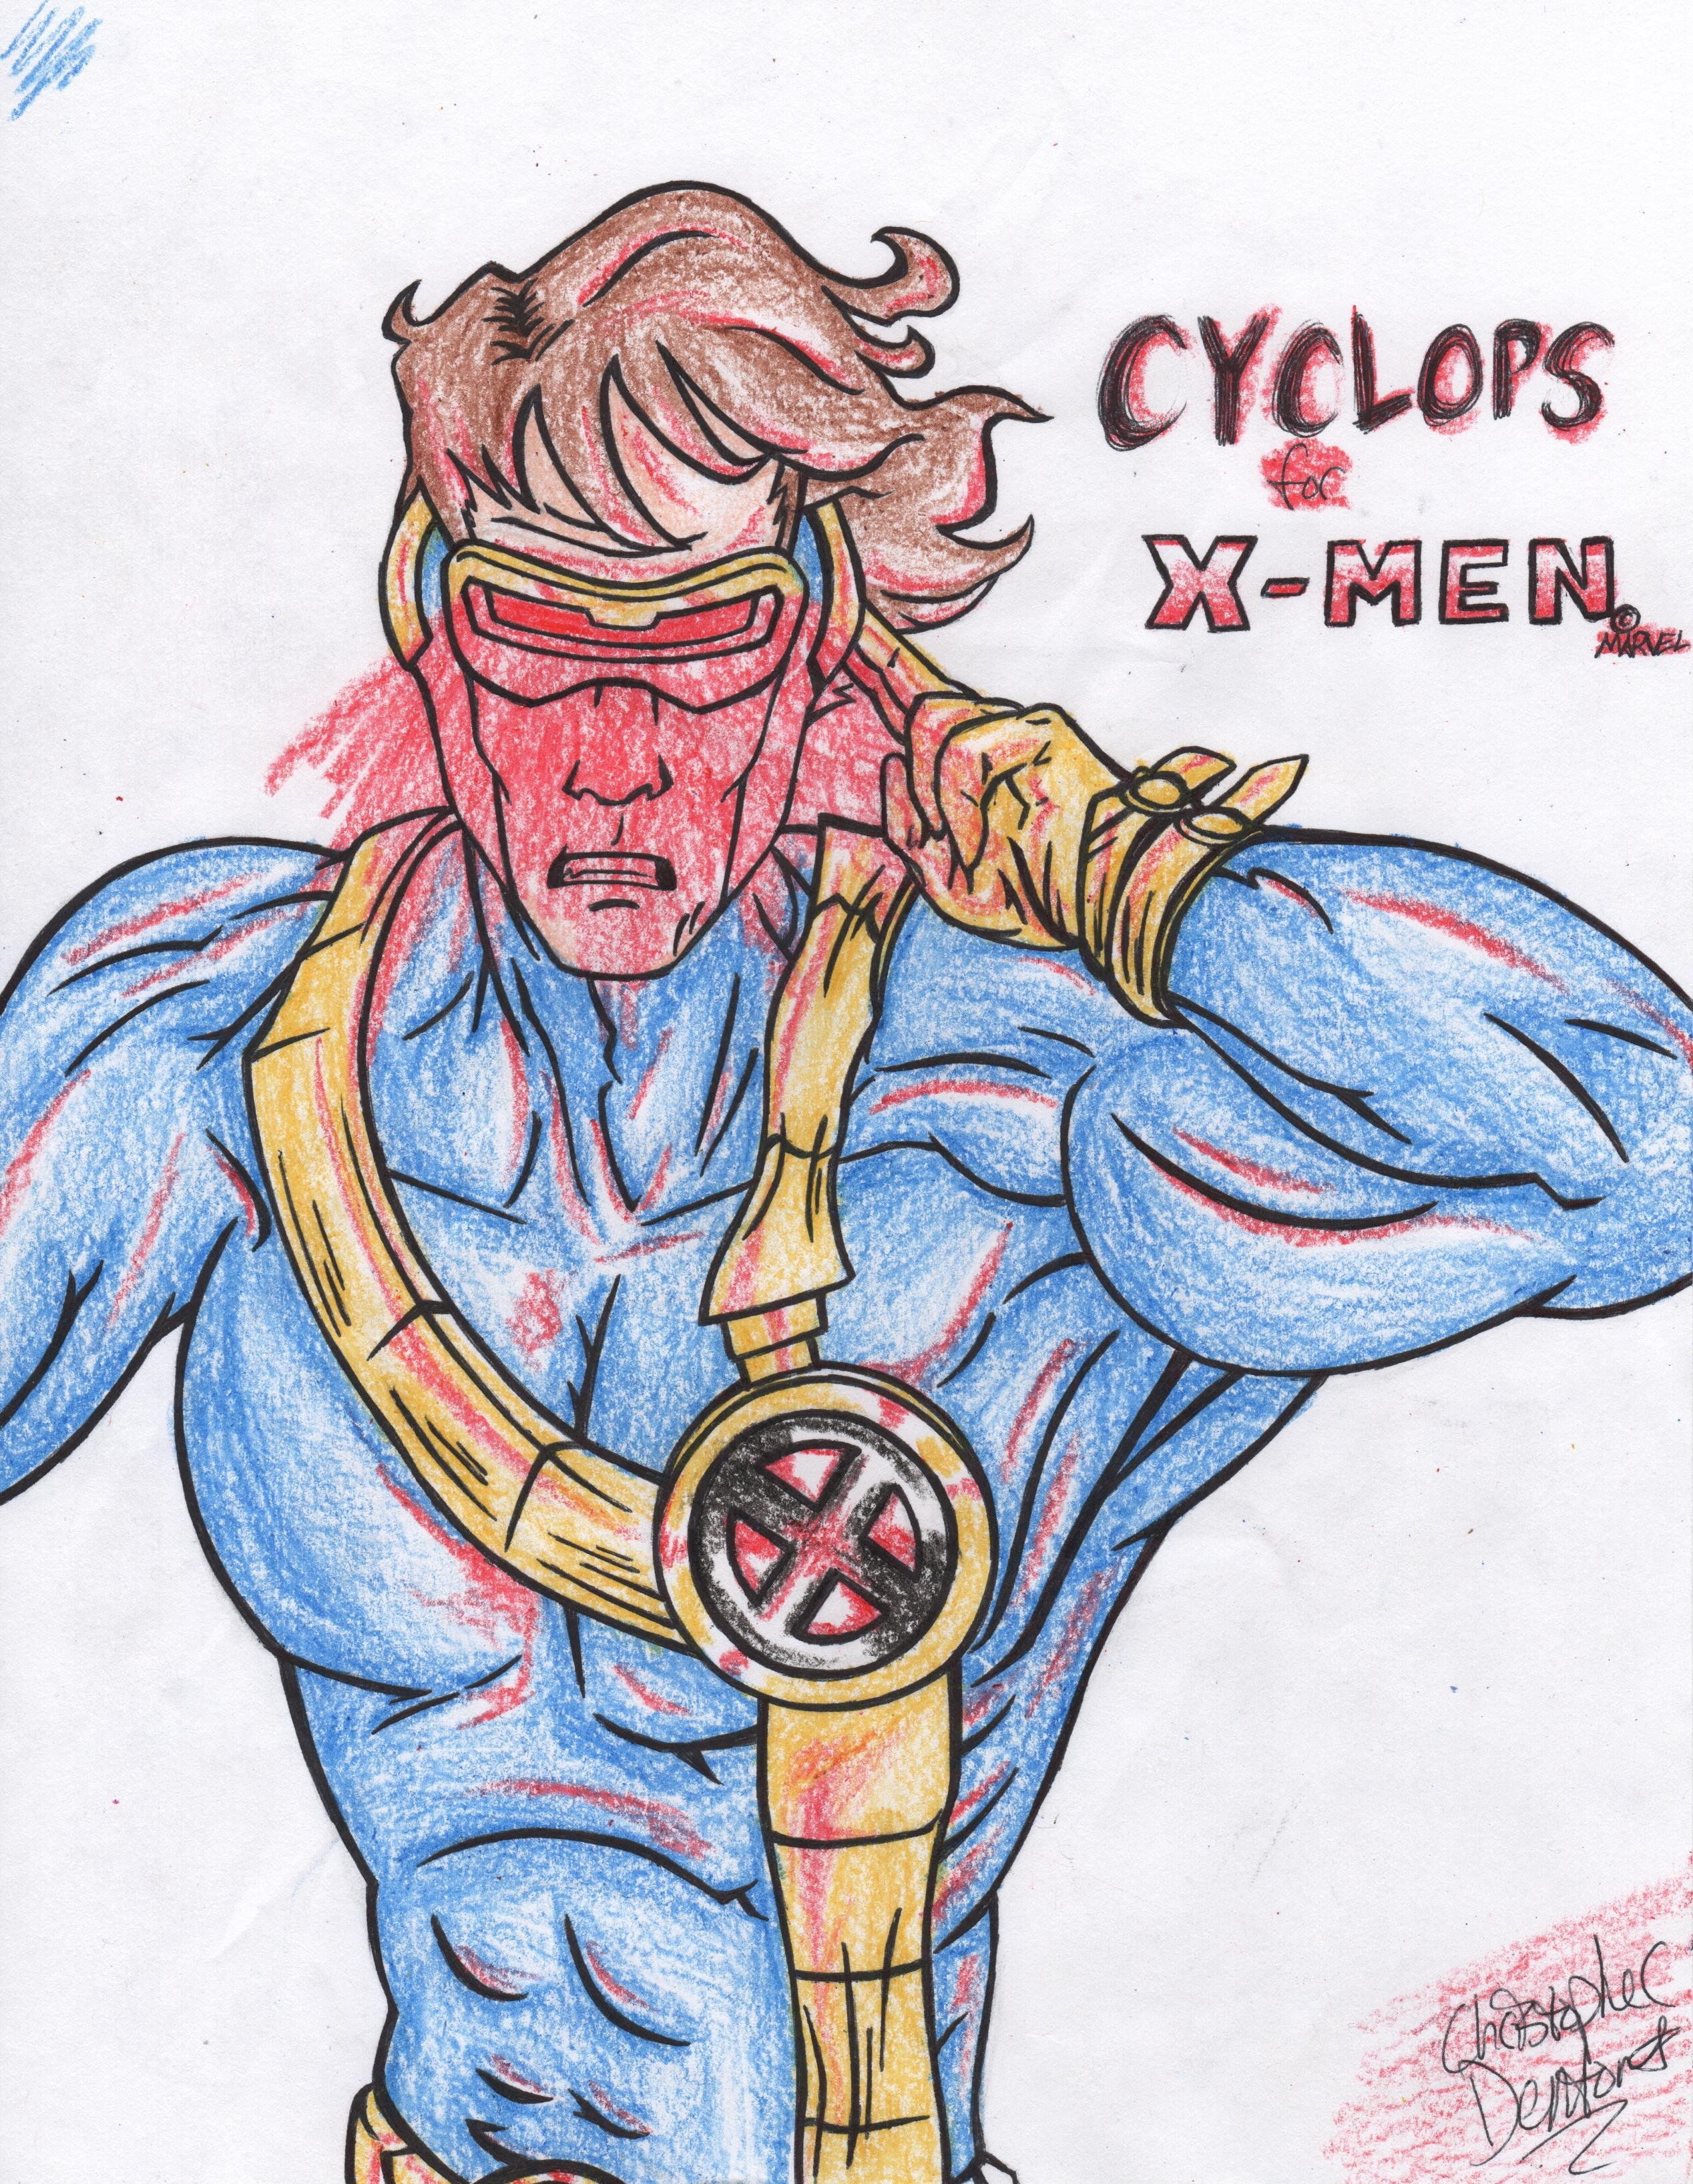 Cyclops from X-Men (Commission)